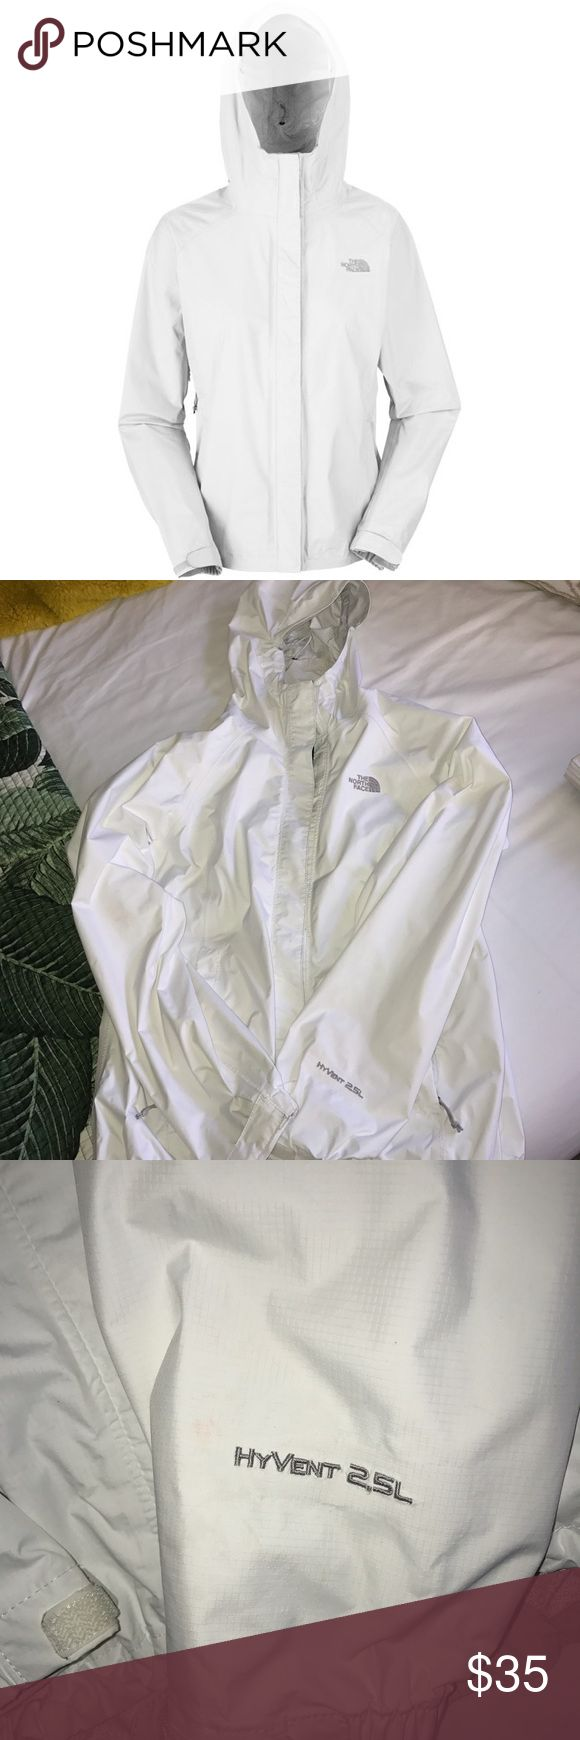 Women's White North Face Waterproof Jacket Was never sold, still on the market! EXCELLENT CONDITION. No tears! Very faint stain as seen in last photos. The North Face Jackets & Coats